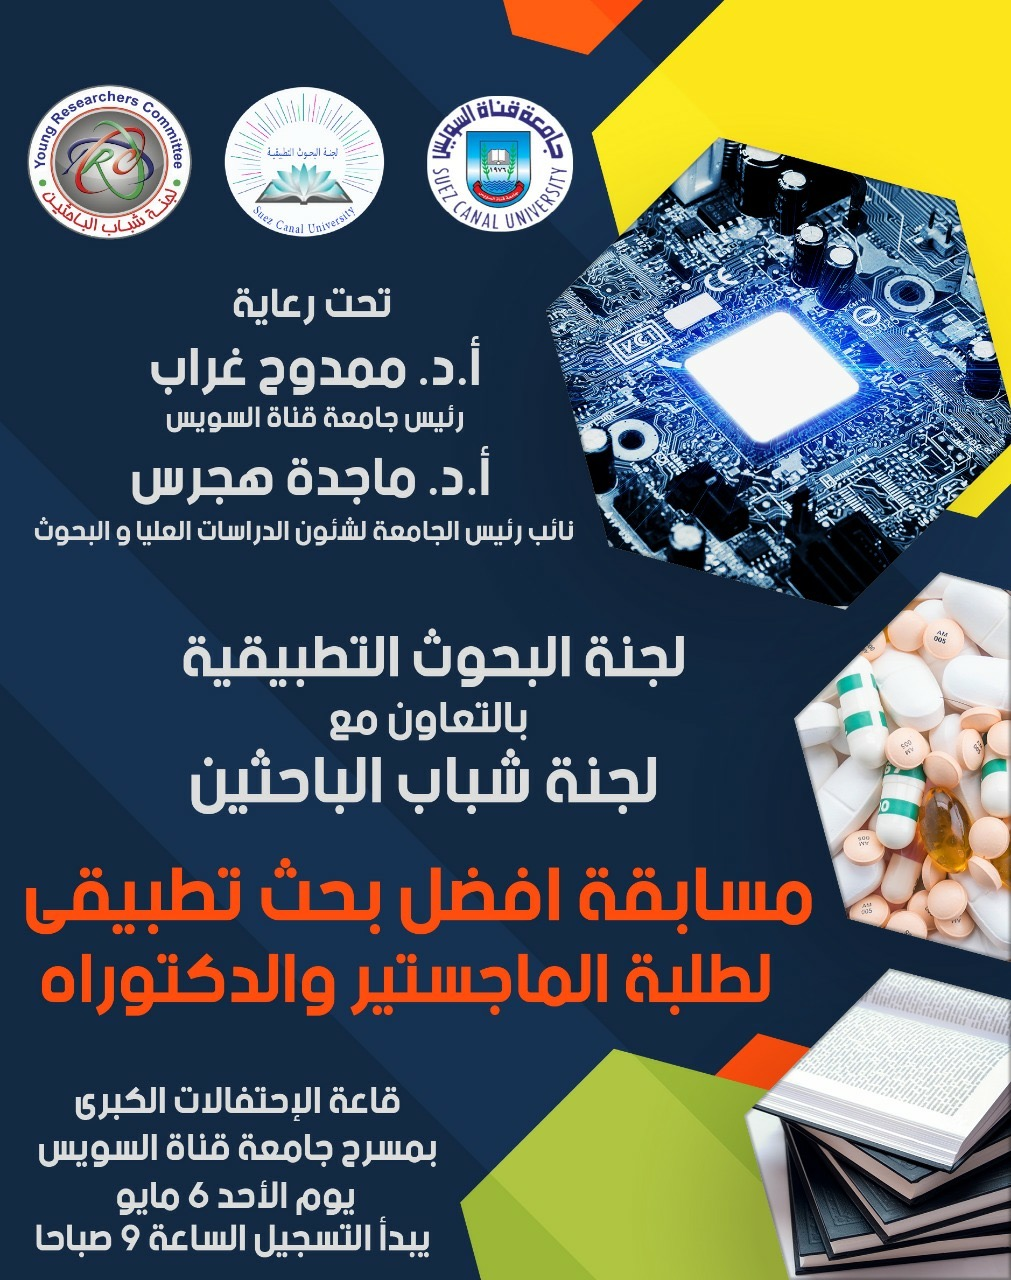 The Best Applied Research Competition for Masters and PhD students at Suez Canal University